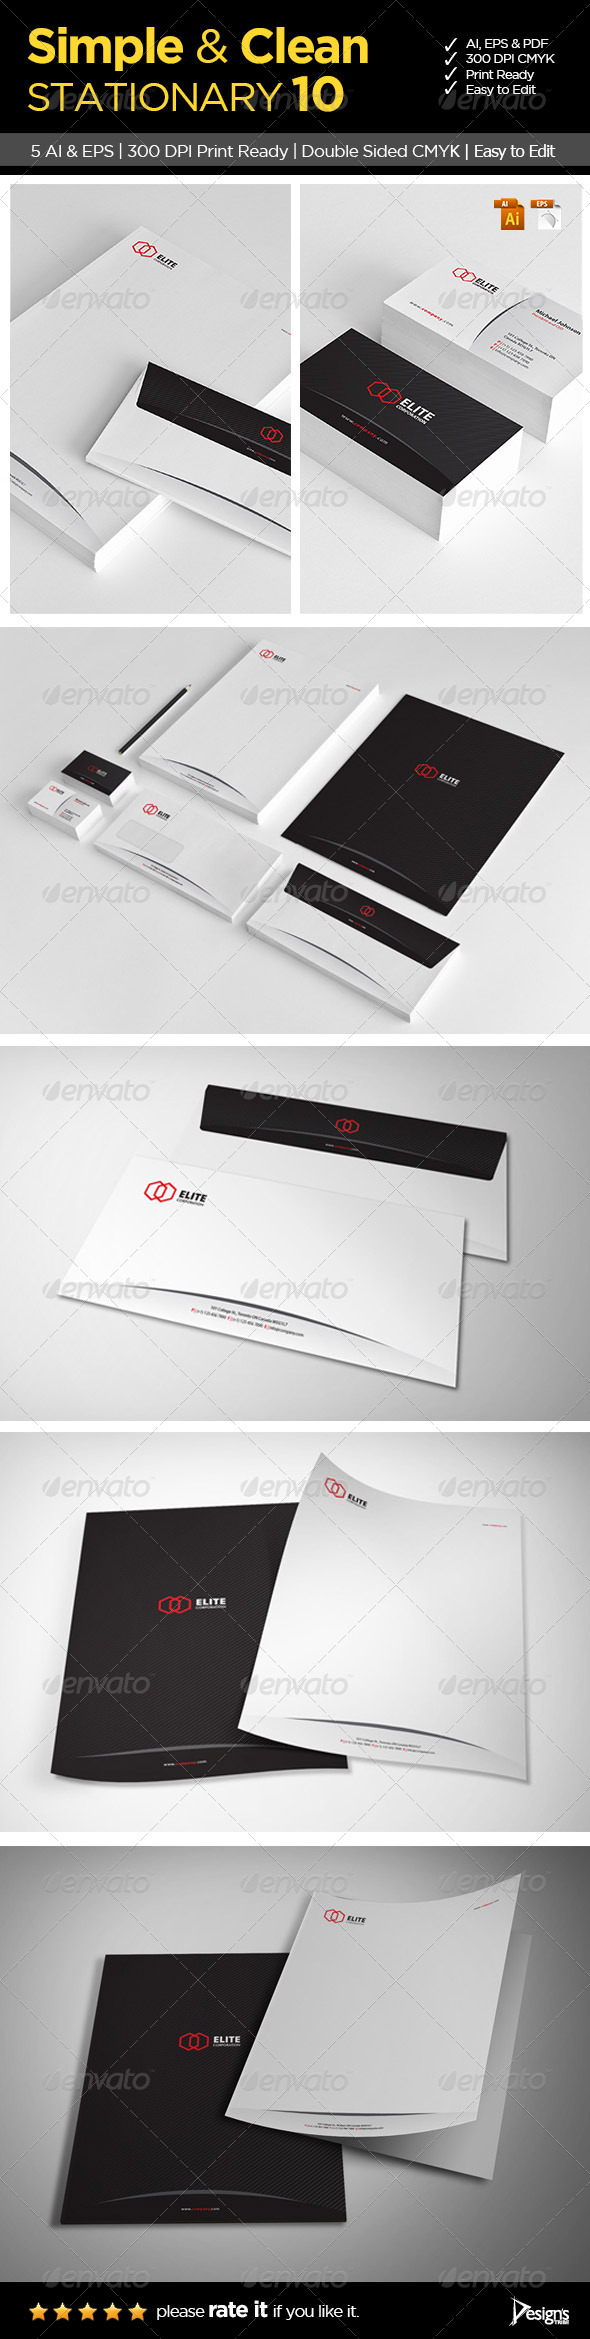 Simple and Clean Stationary 10 - Stationery Print Templates